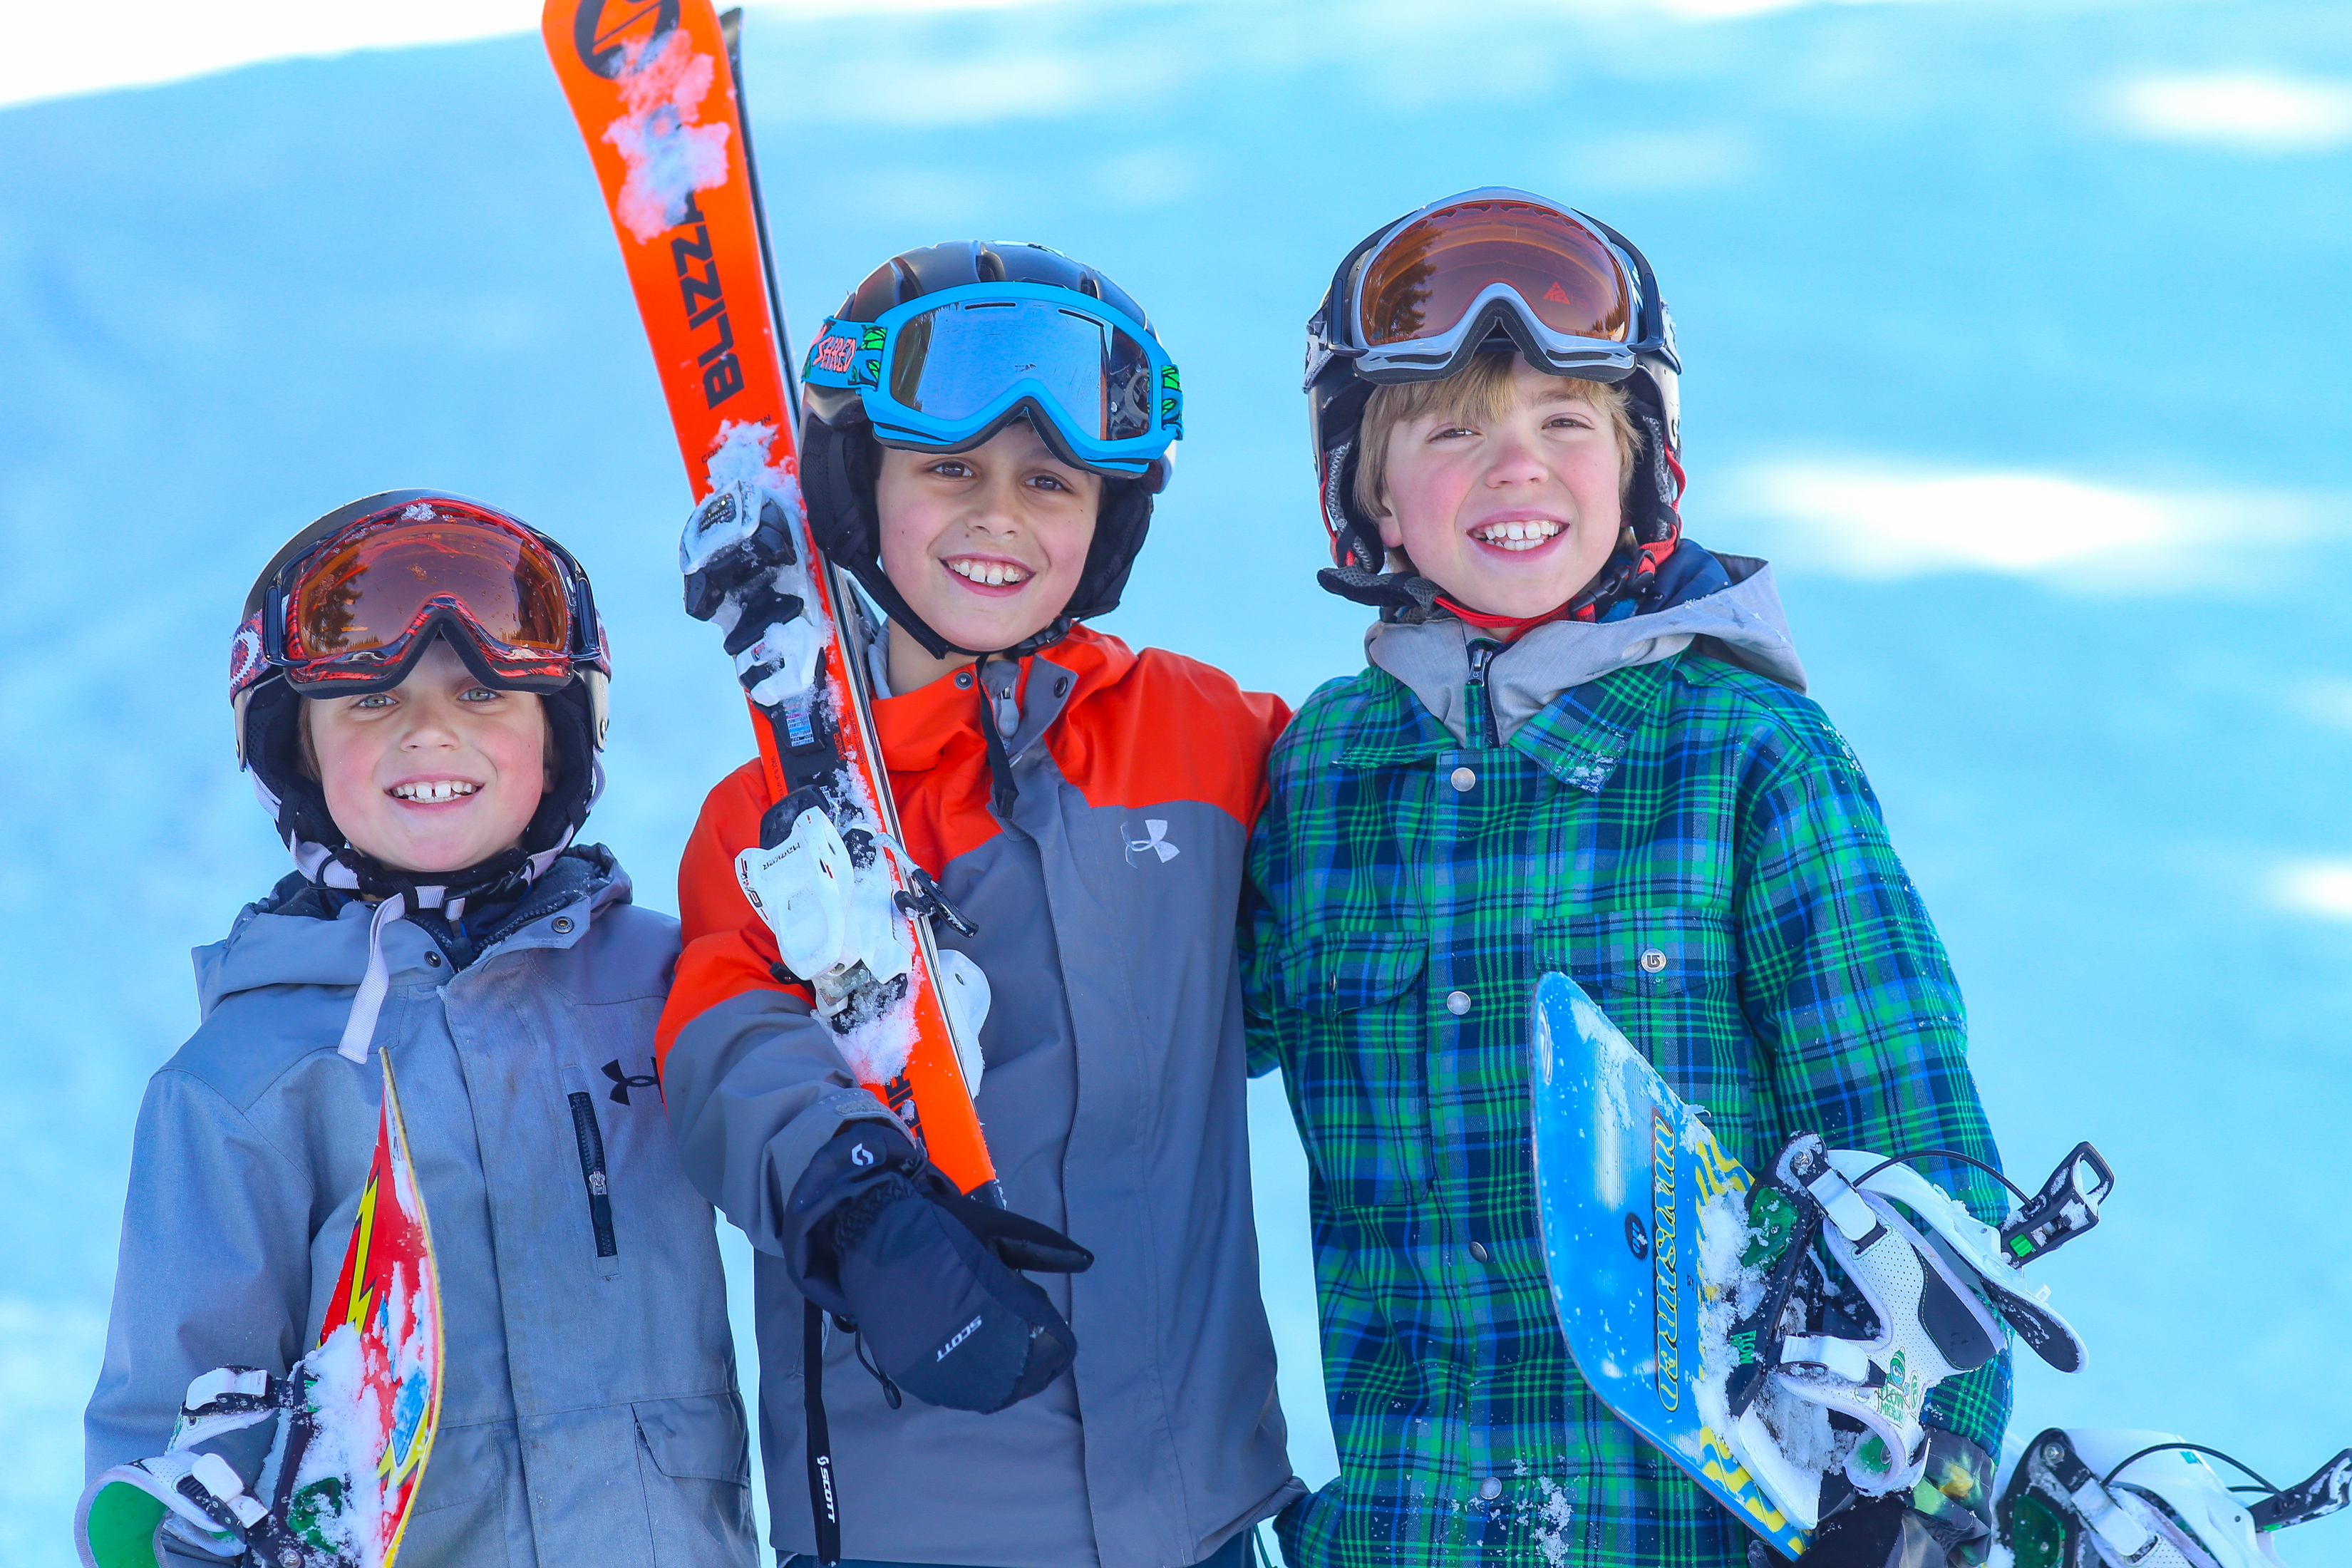 Hit the Slopes and Save with SkiPA's Snowpass Packages